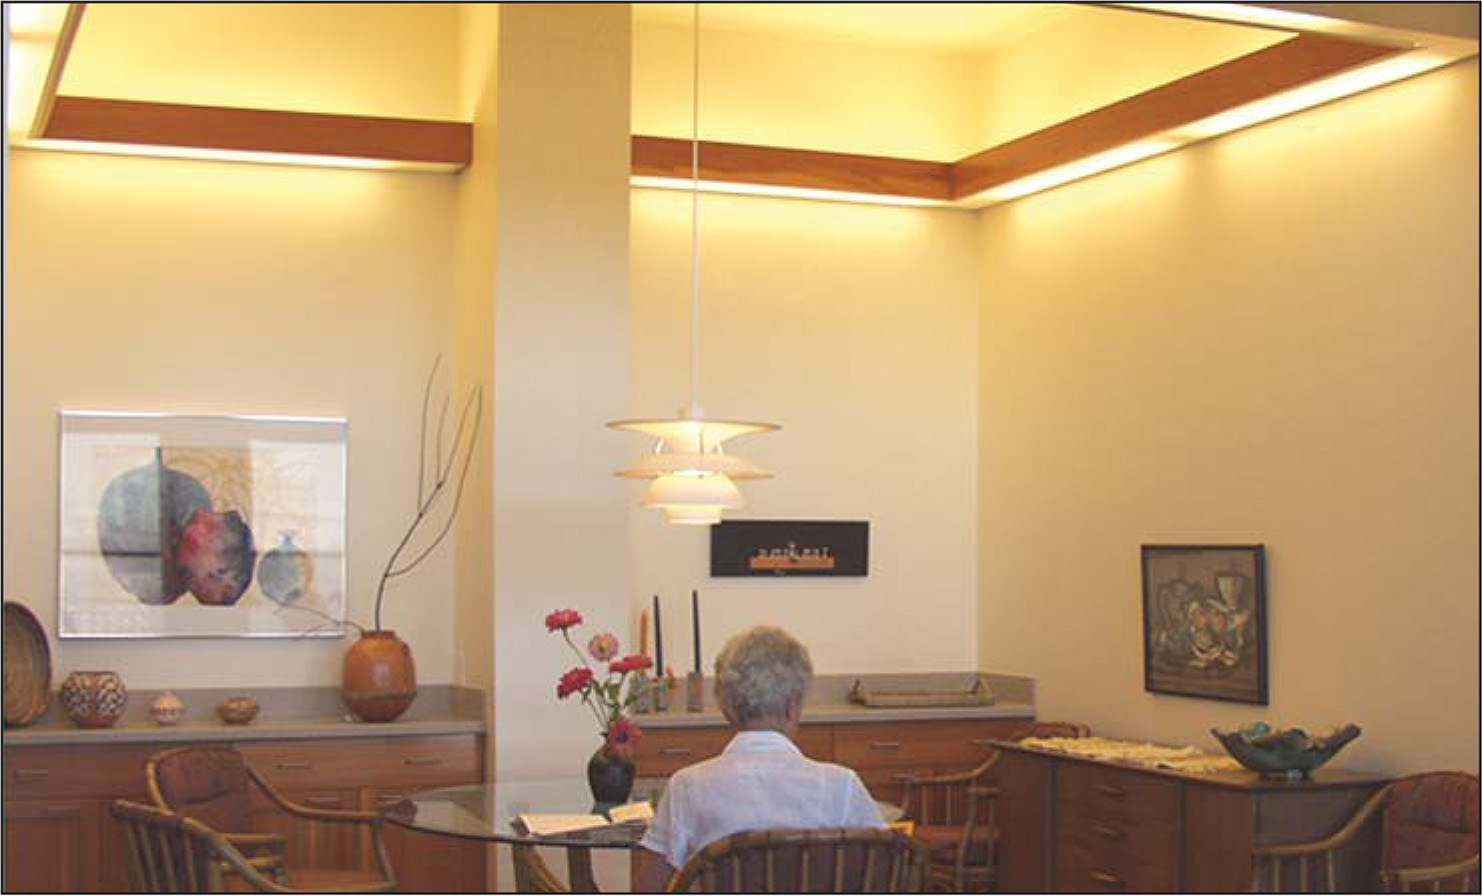 Lighting Solutions For Contemporary Problems Of Older Adults